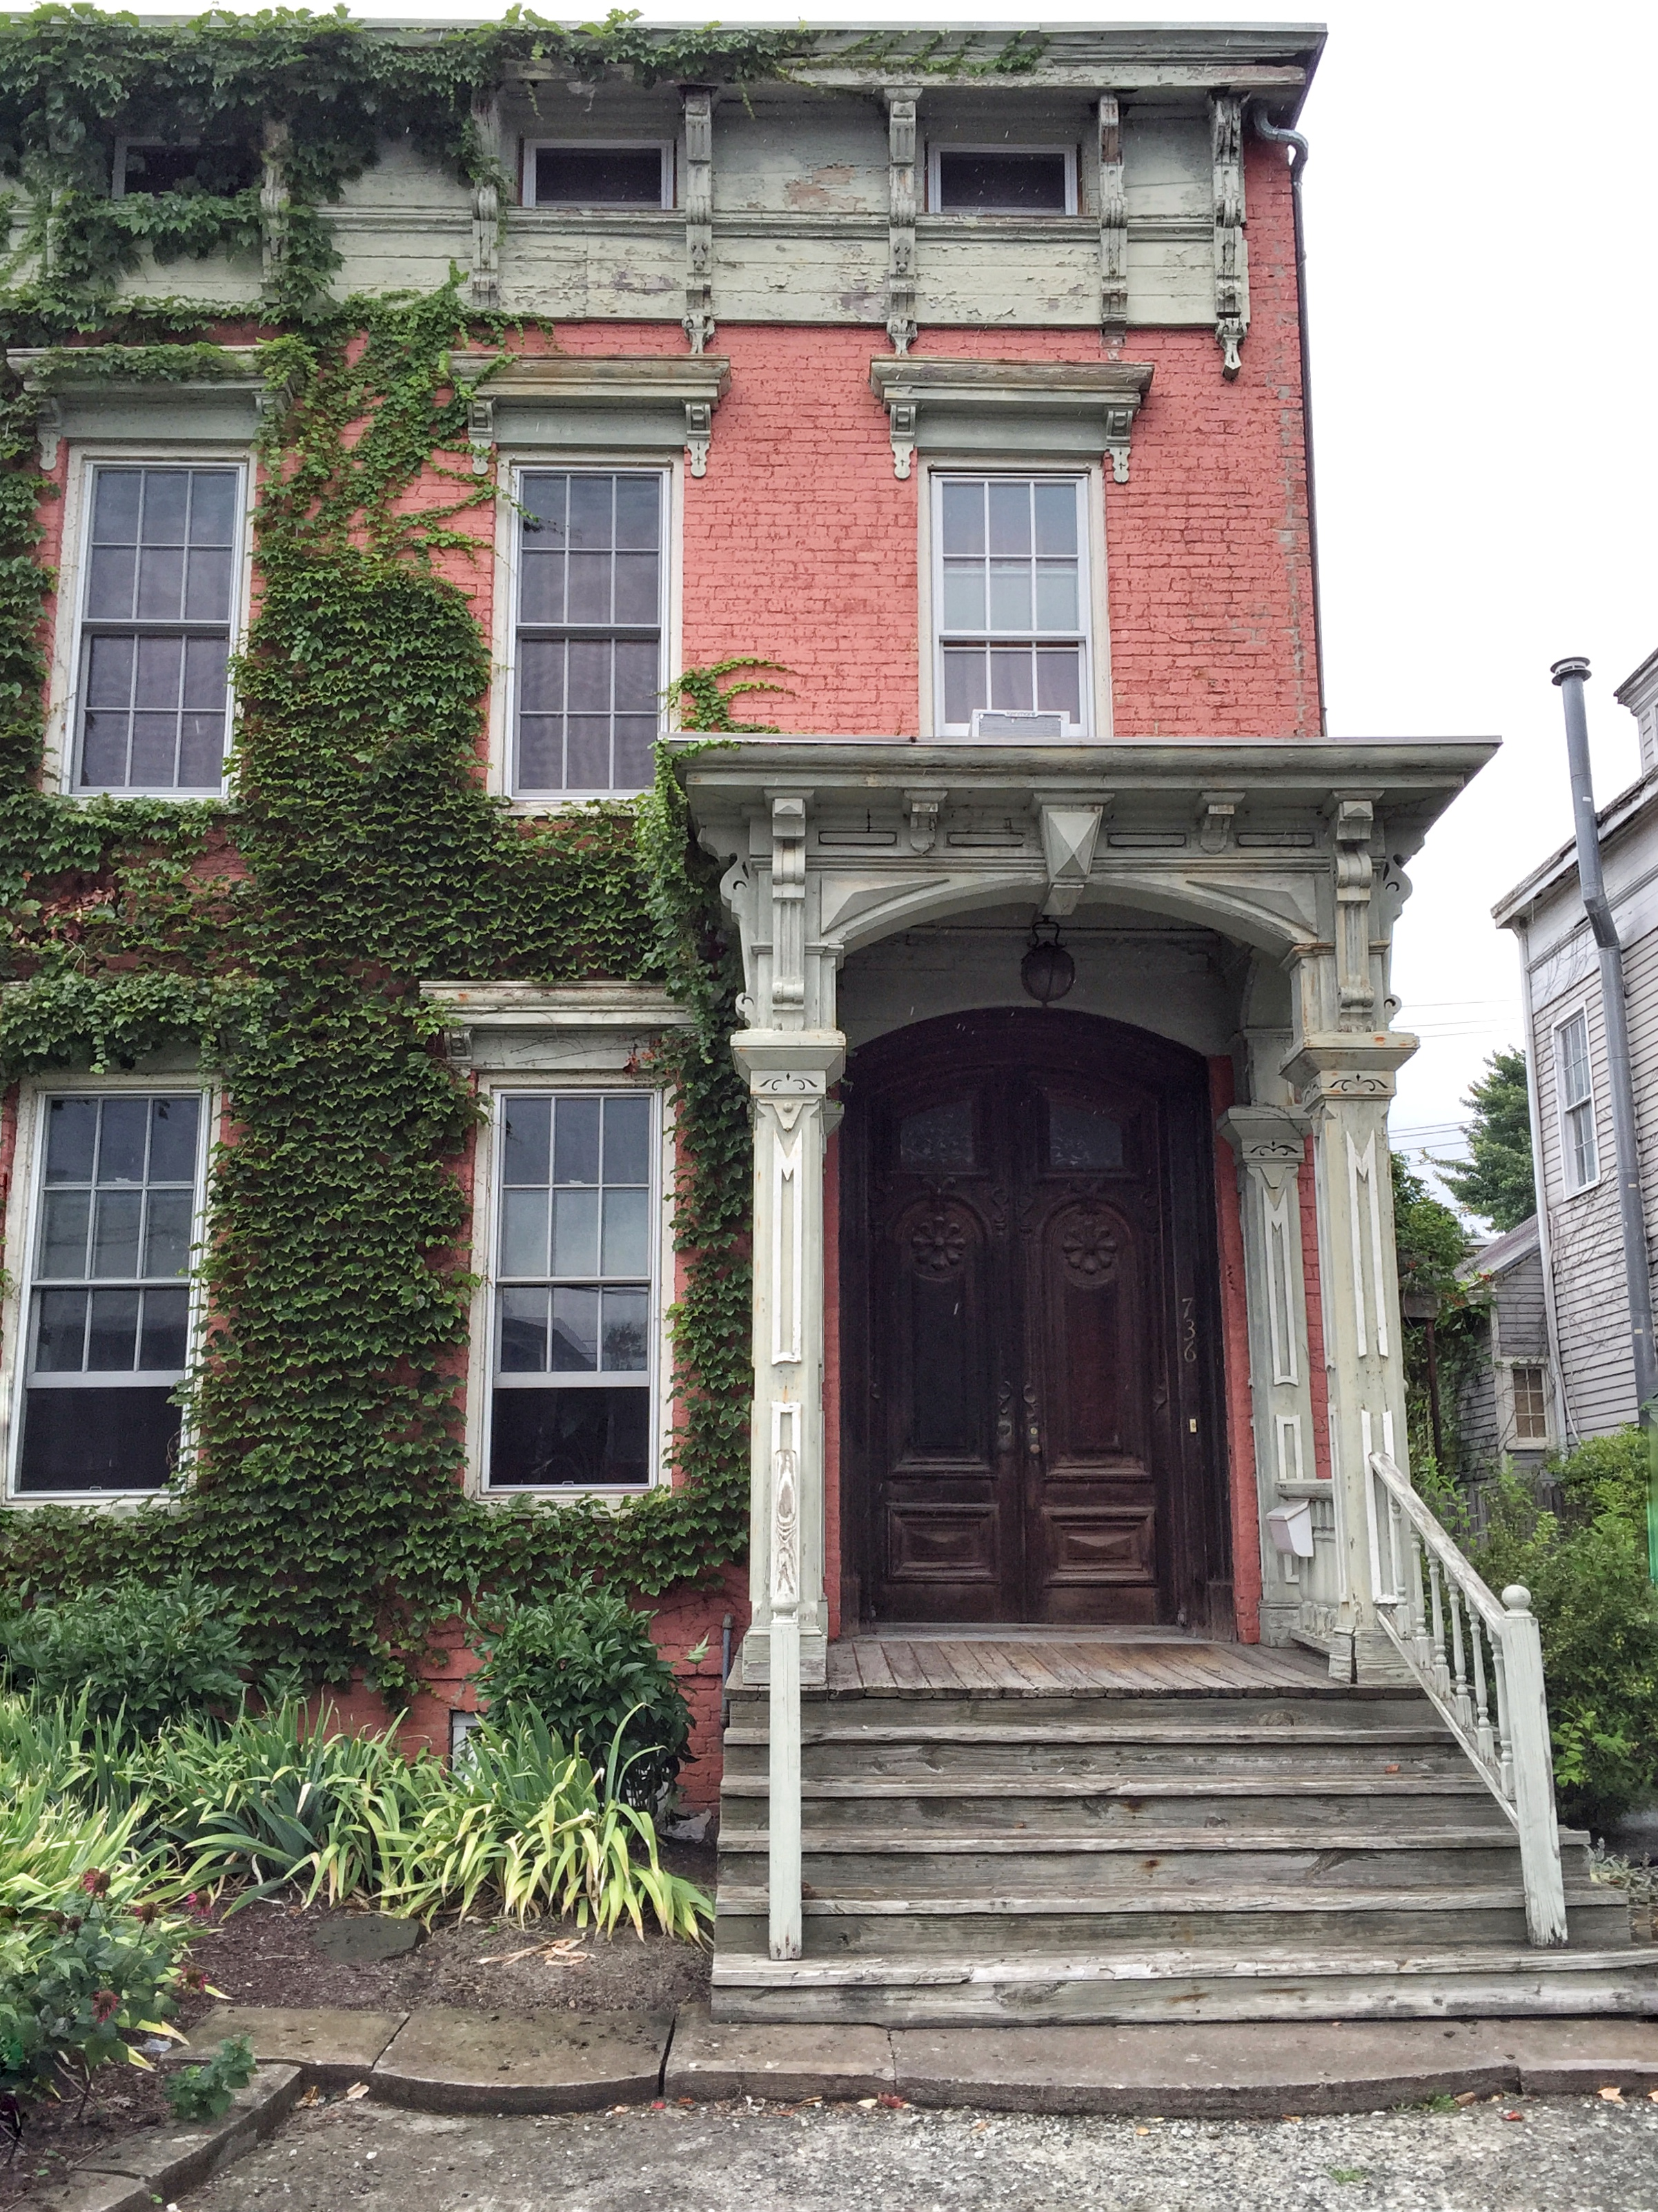 ROSE & IVY Journal Travels to Hudson, NY What to Do & Where to Shop